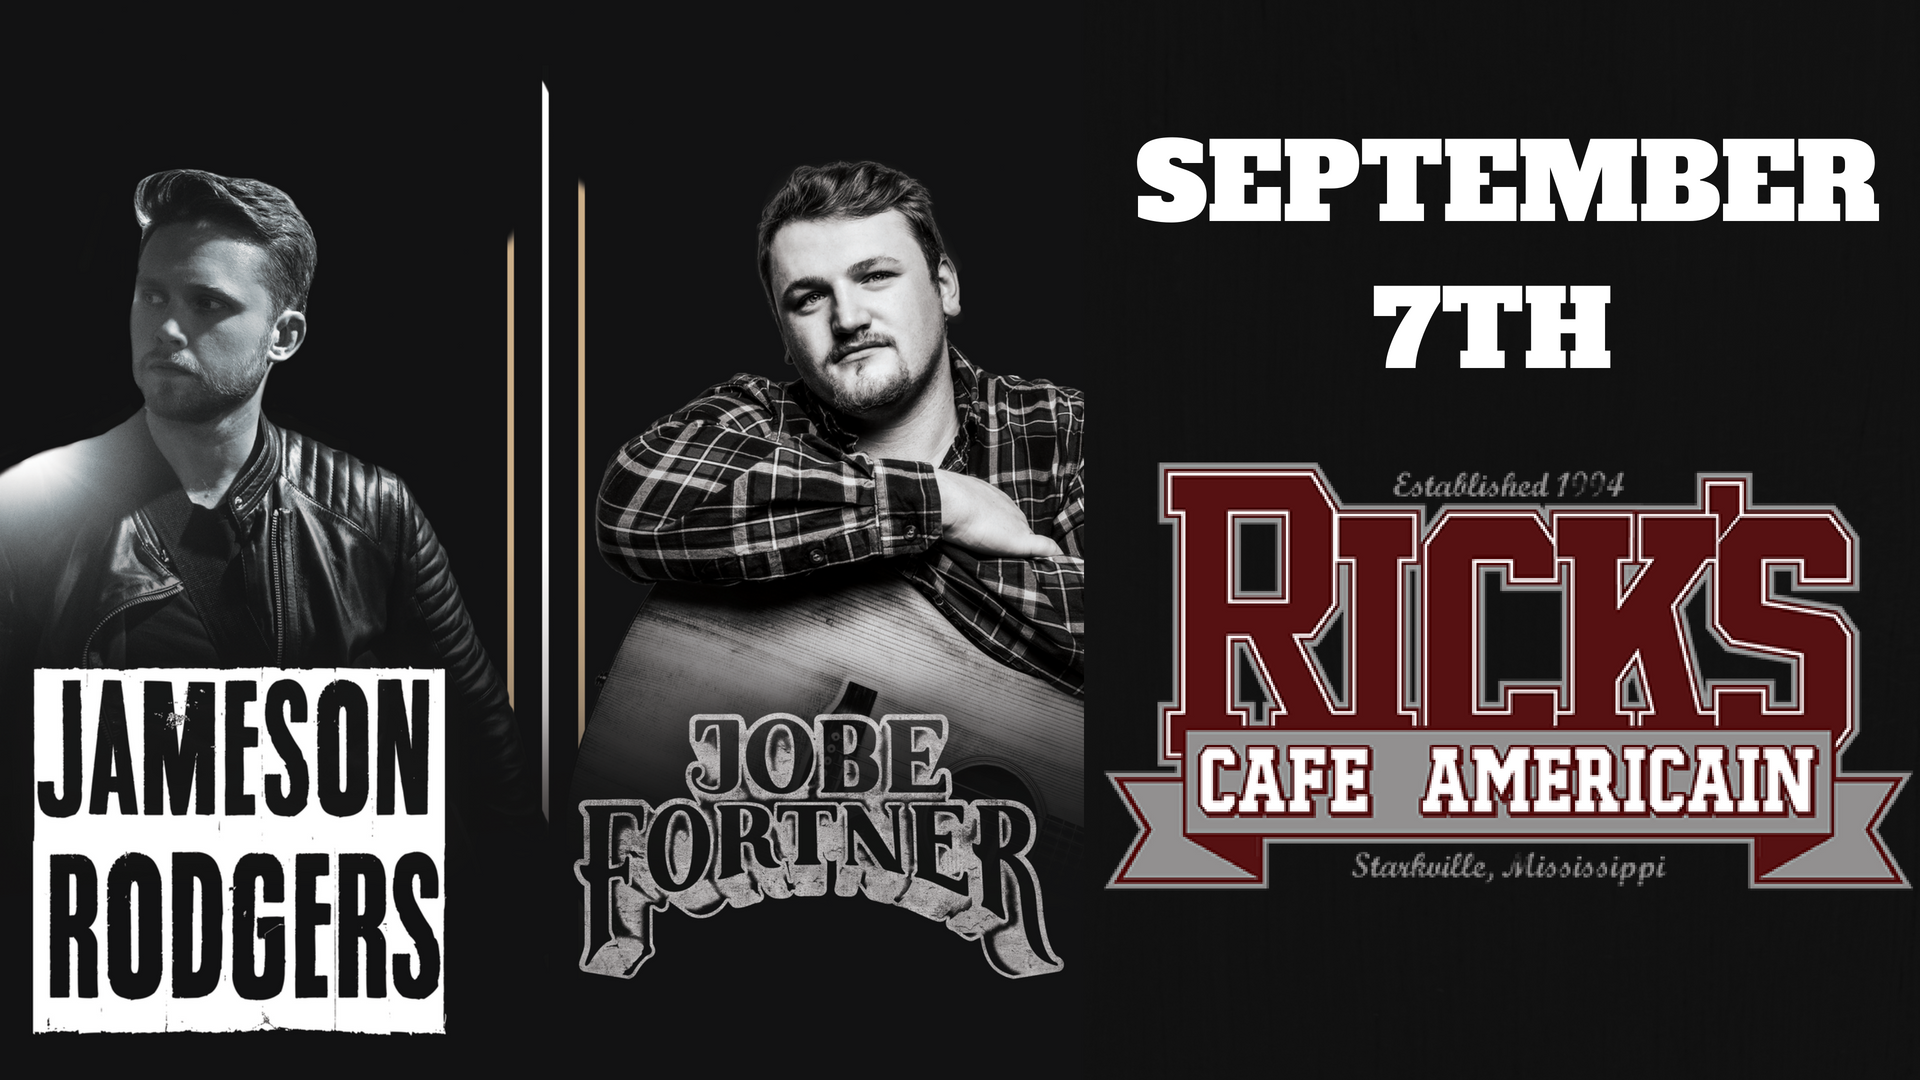 Jameson Rodgers at Rick's Cafe on September 7th!